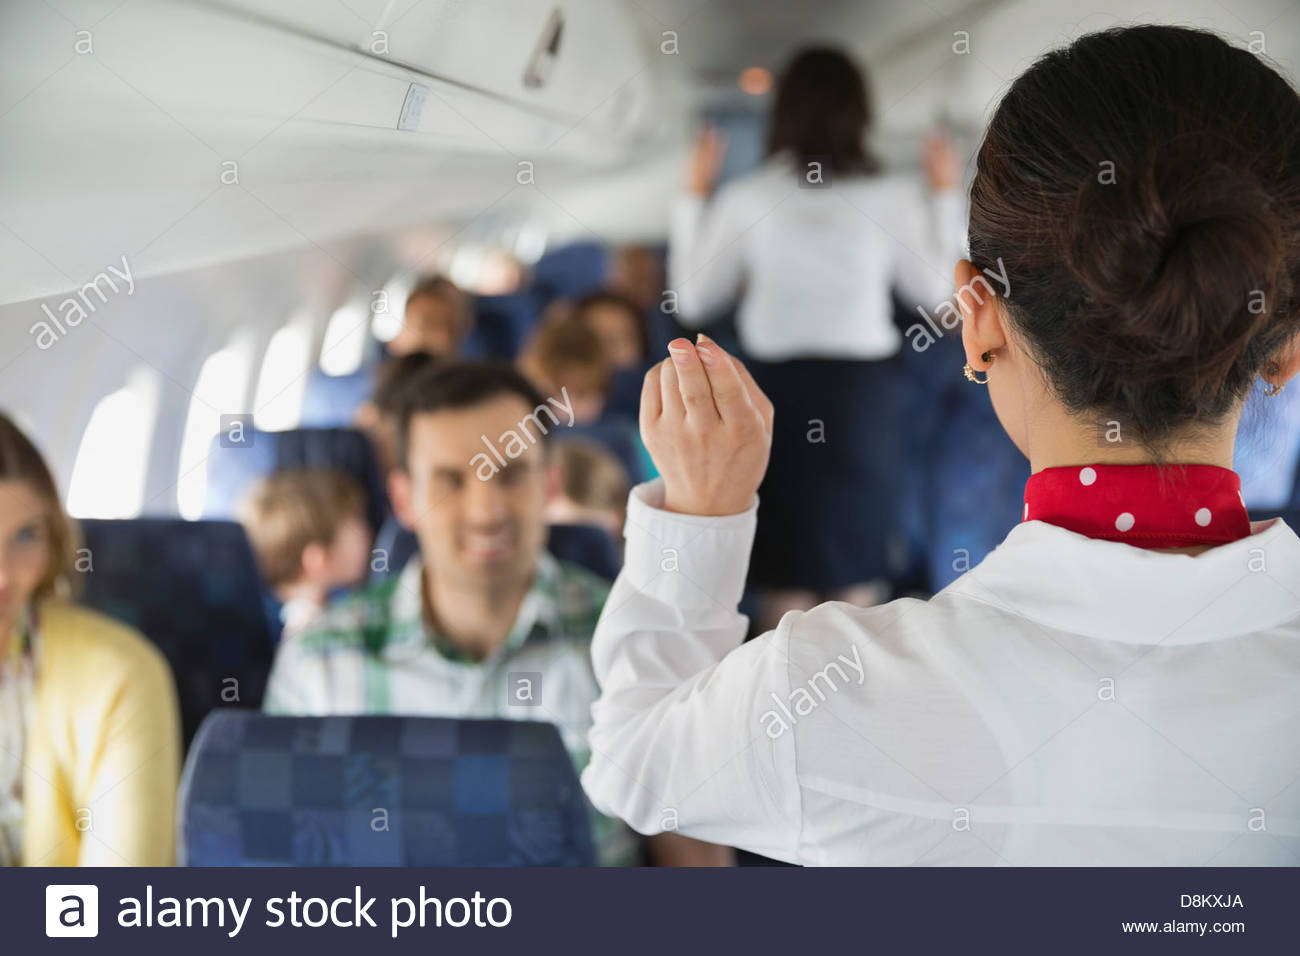 Rear view of flight attendant indicating exits to passengers in airplane - Stock Image